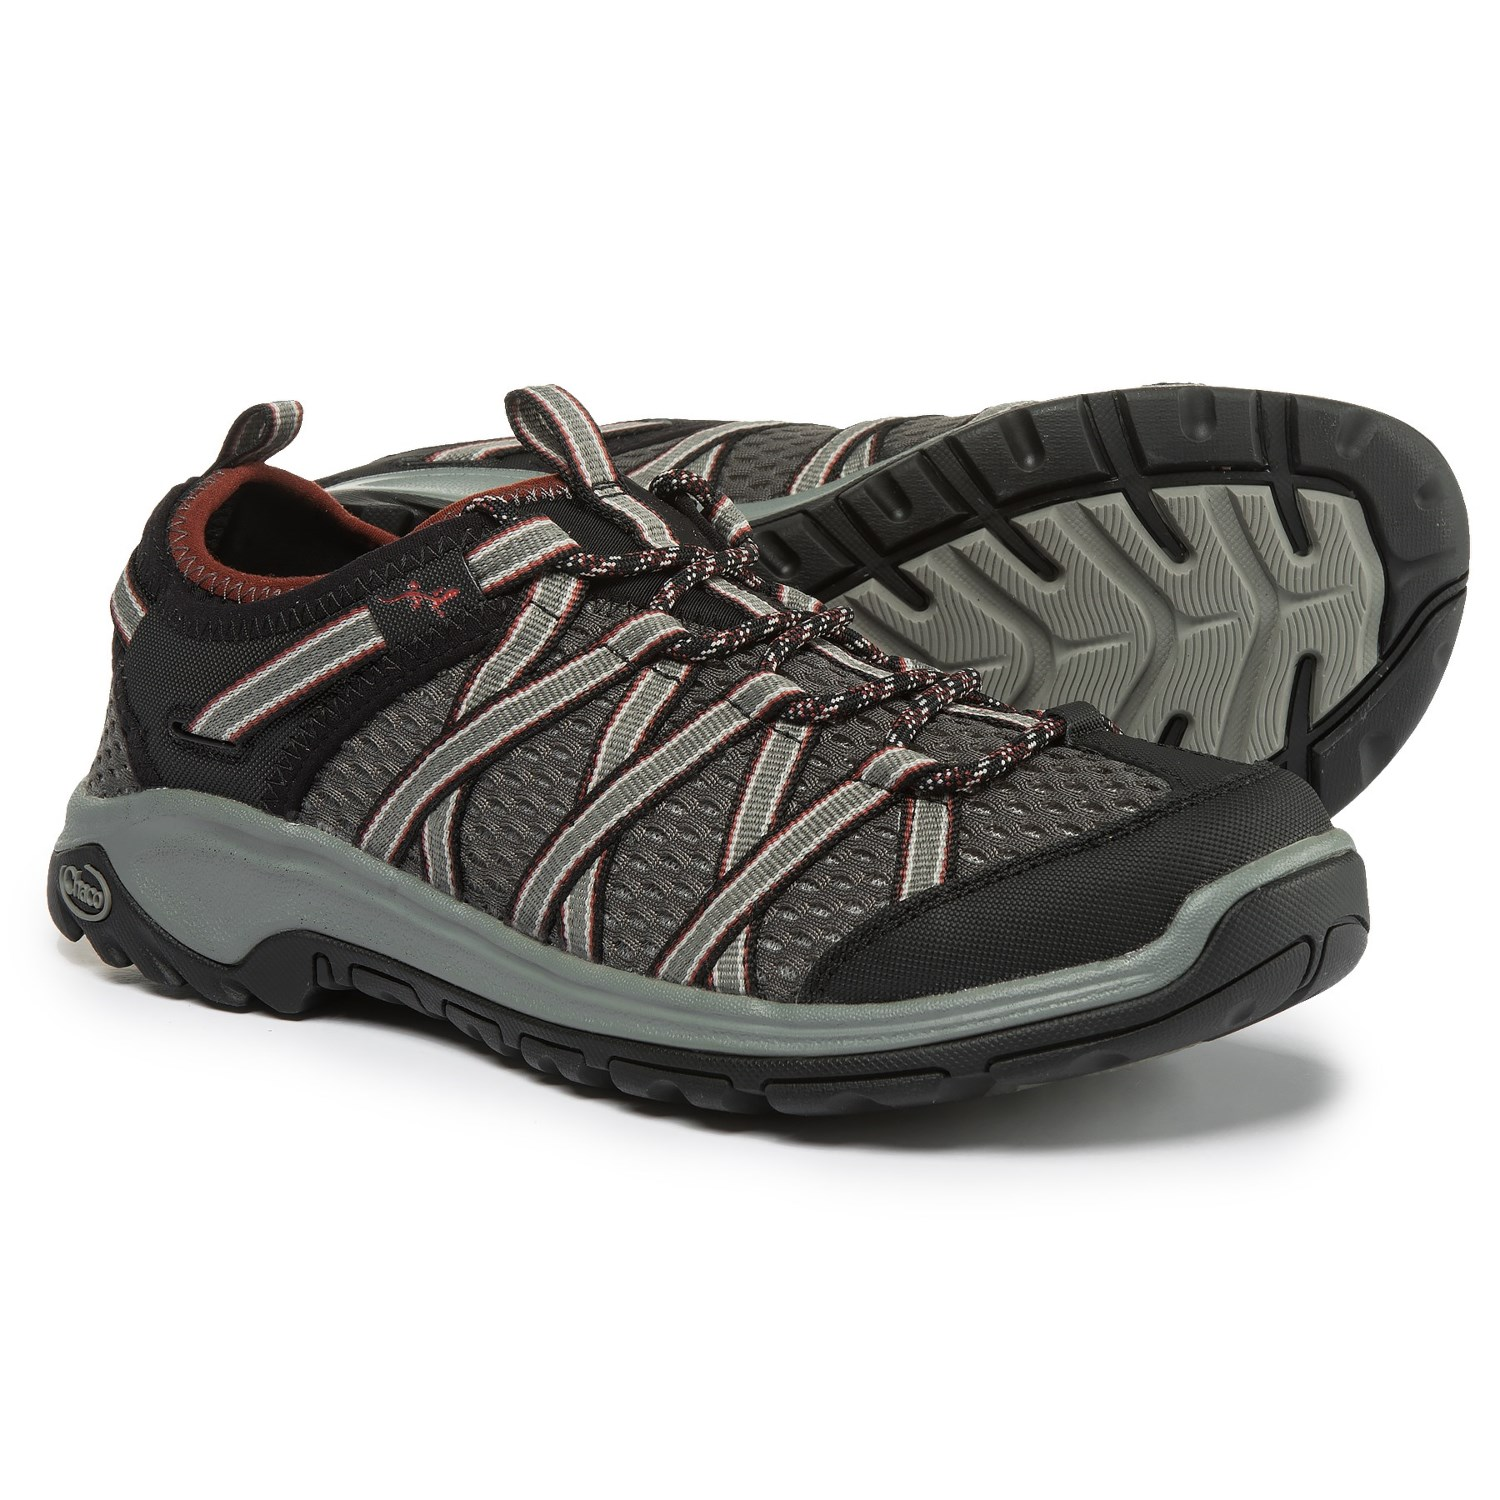 522467cc986b Chaco OutCross Evo 2 Water Shoes (For Men) - Save 45%